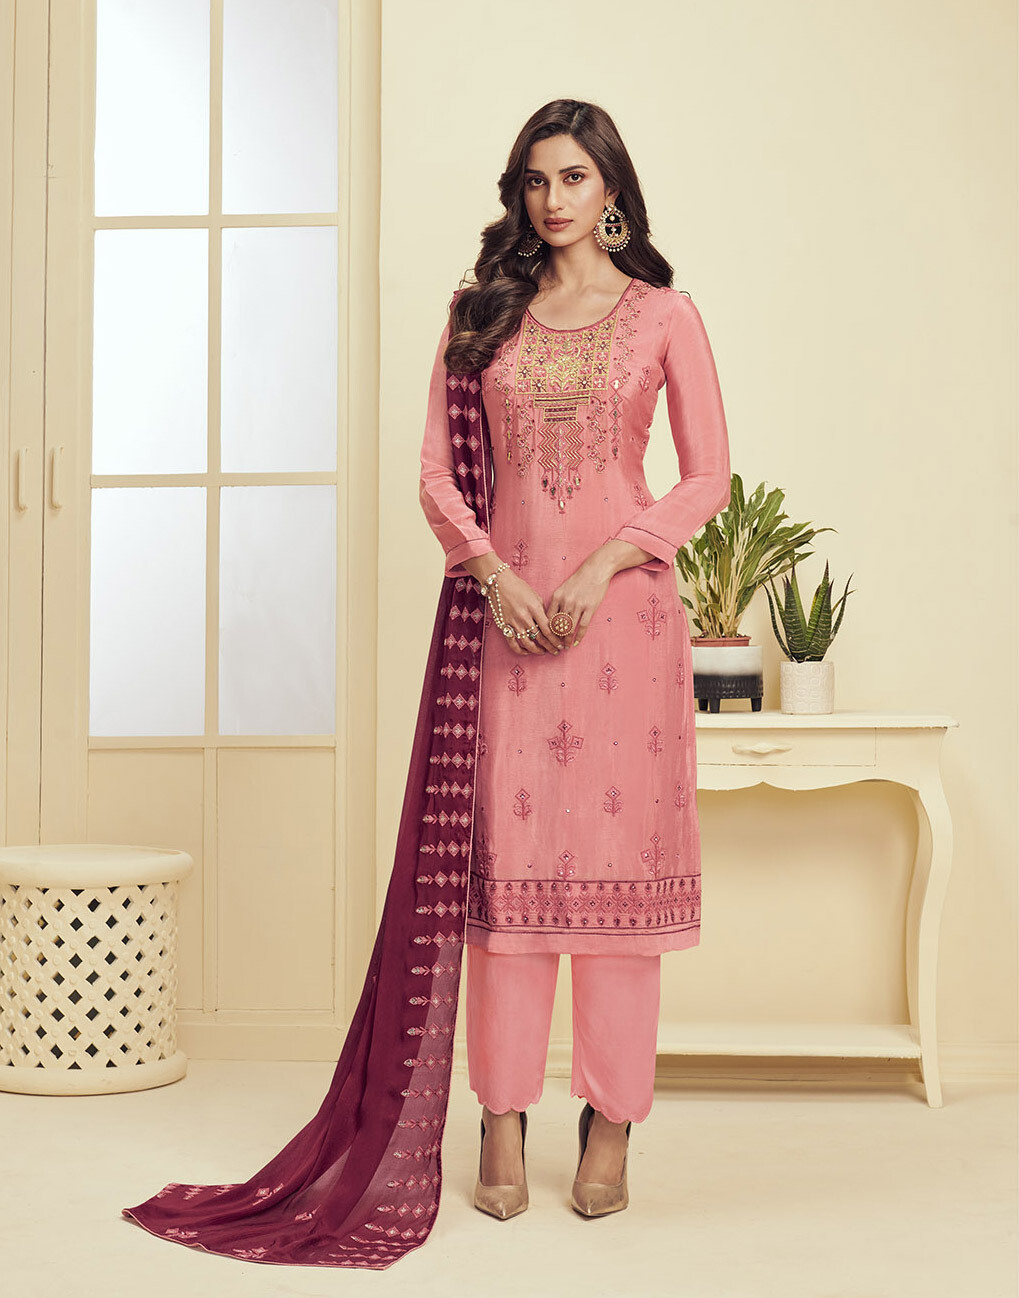 Khatli Sequence Embroidered Pant Suit In Rouge Pink